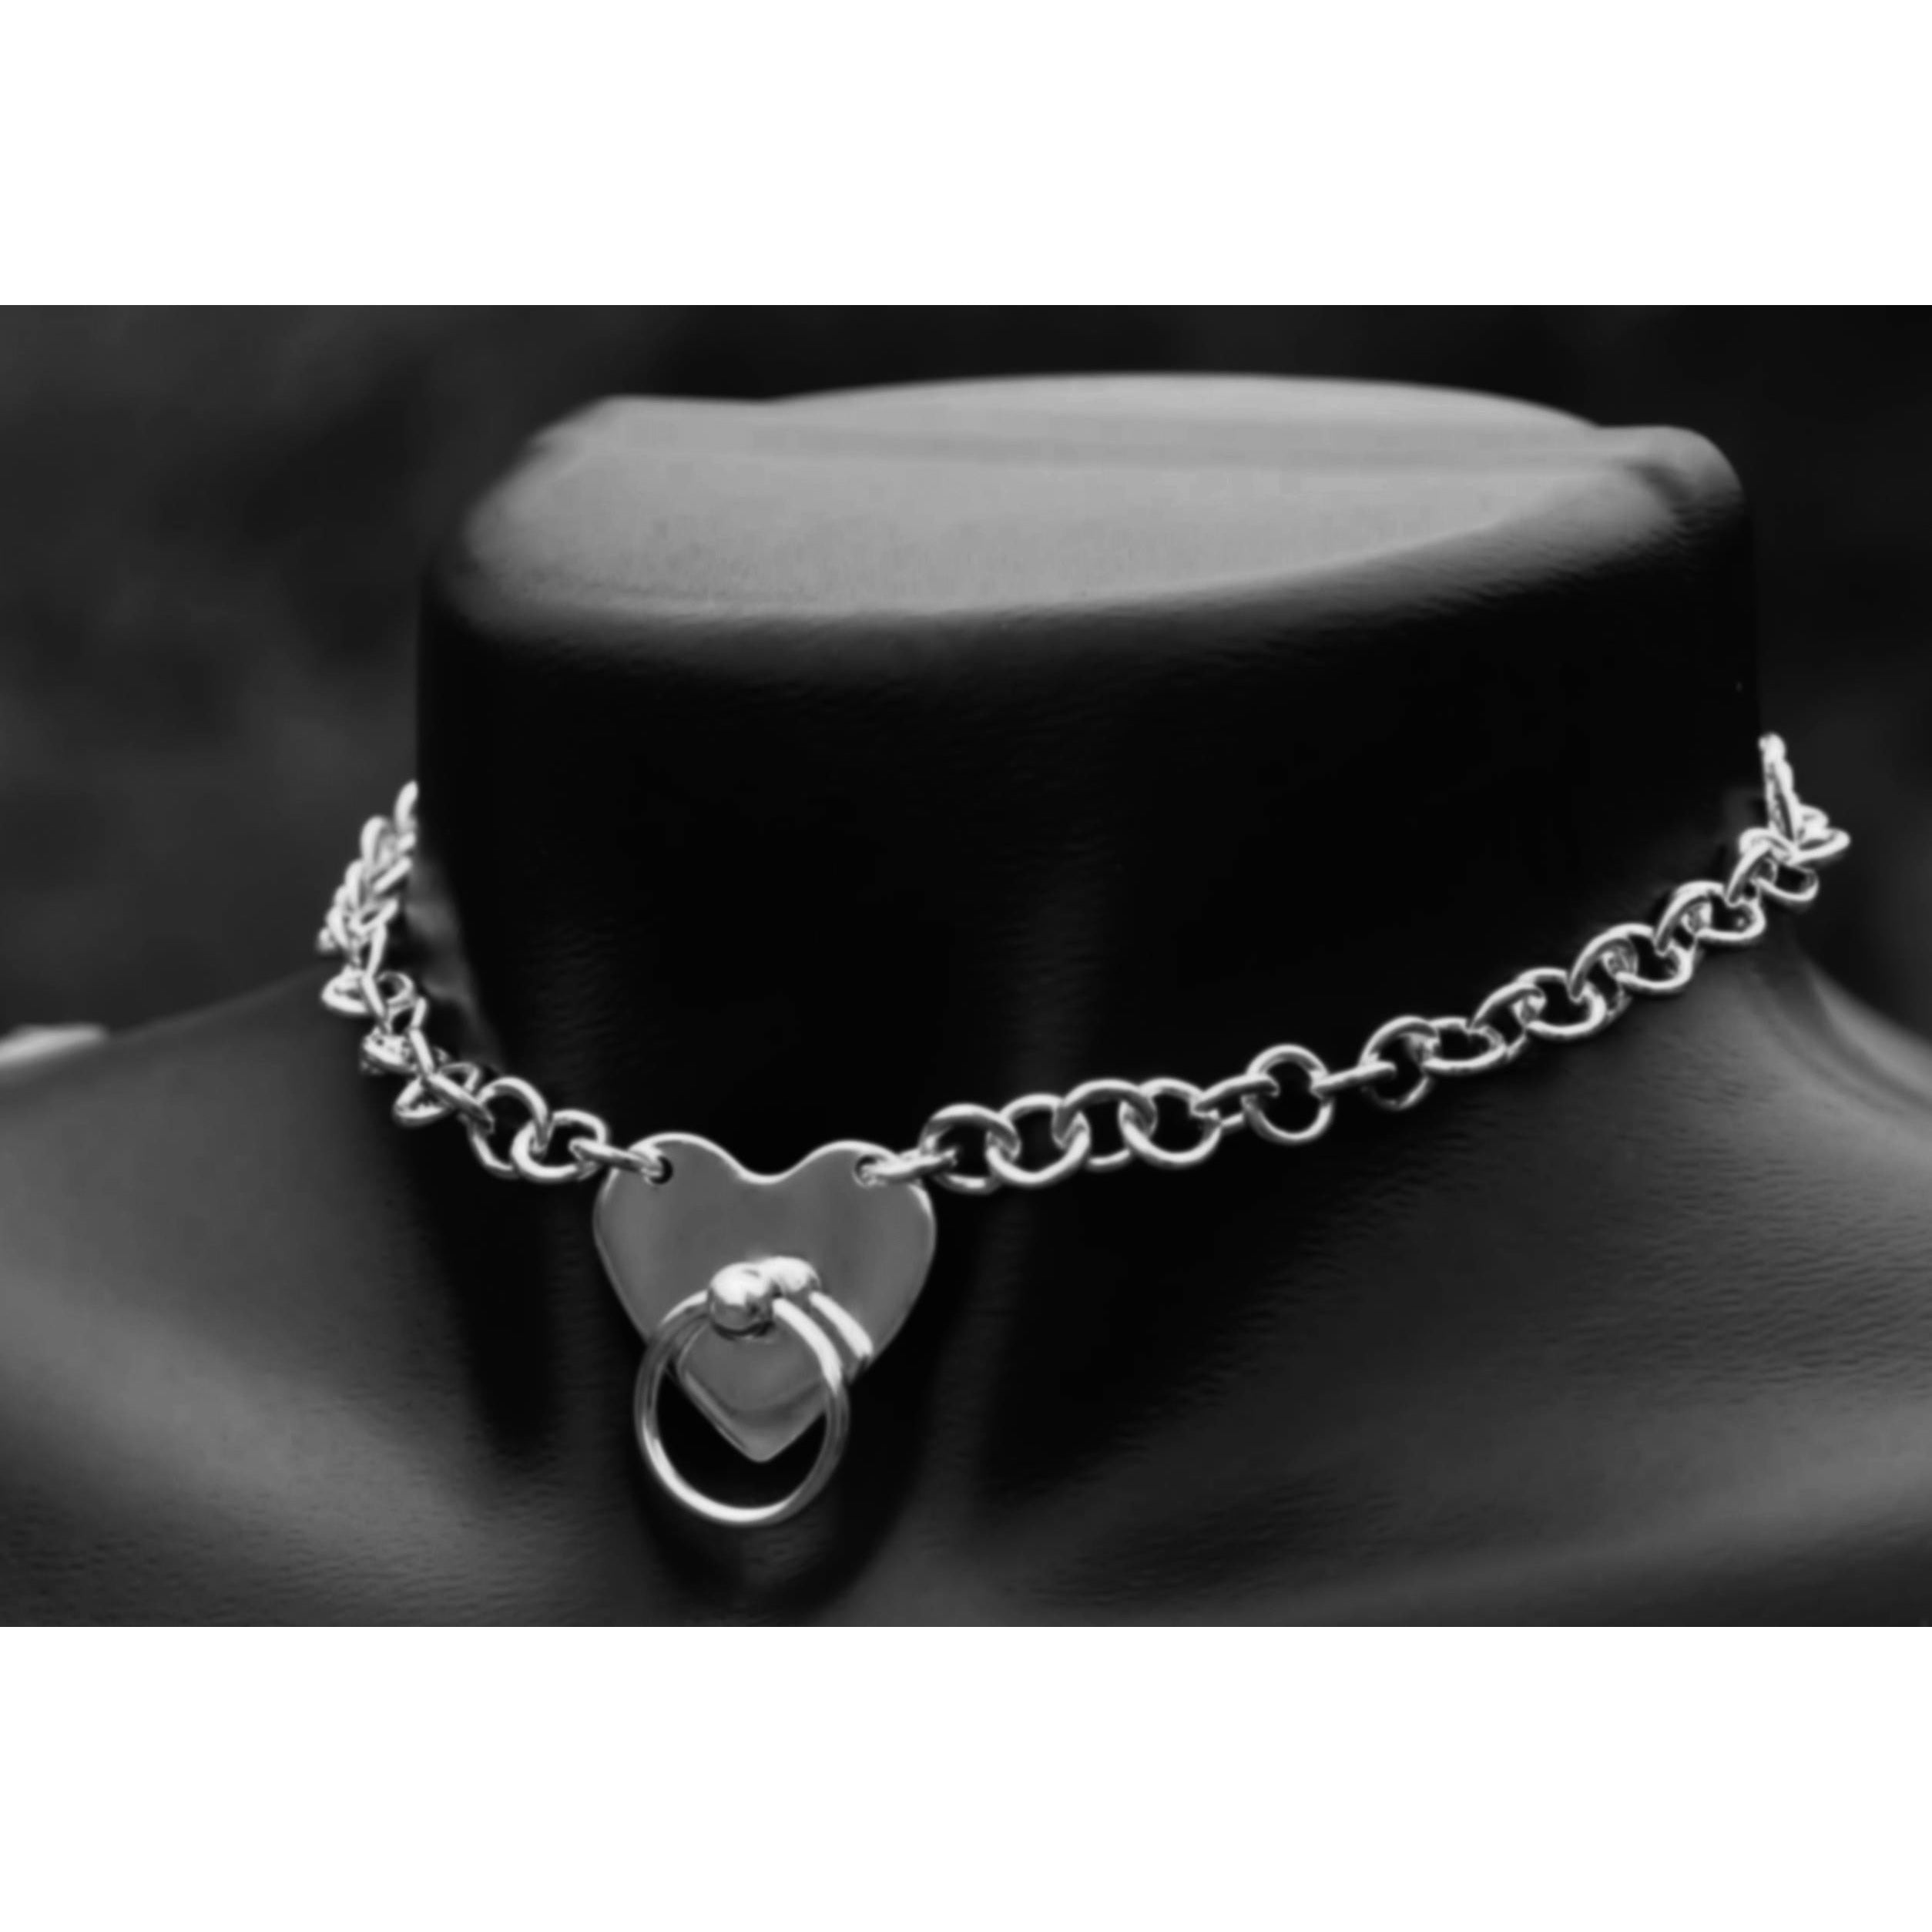 The Captive Heart Collar-Sterling Silver 30mm